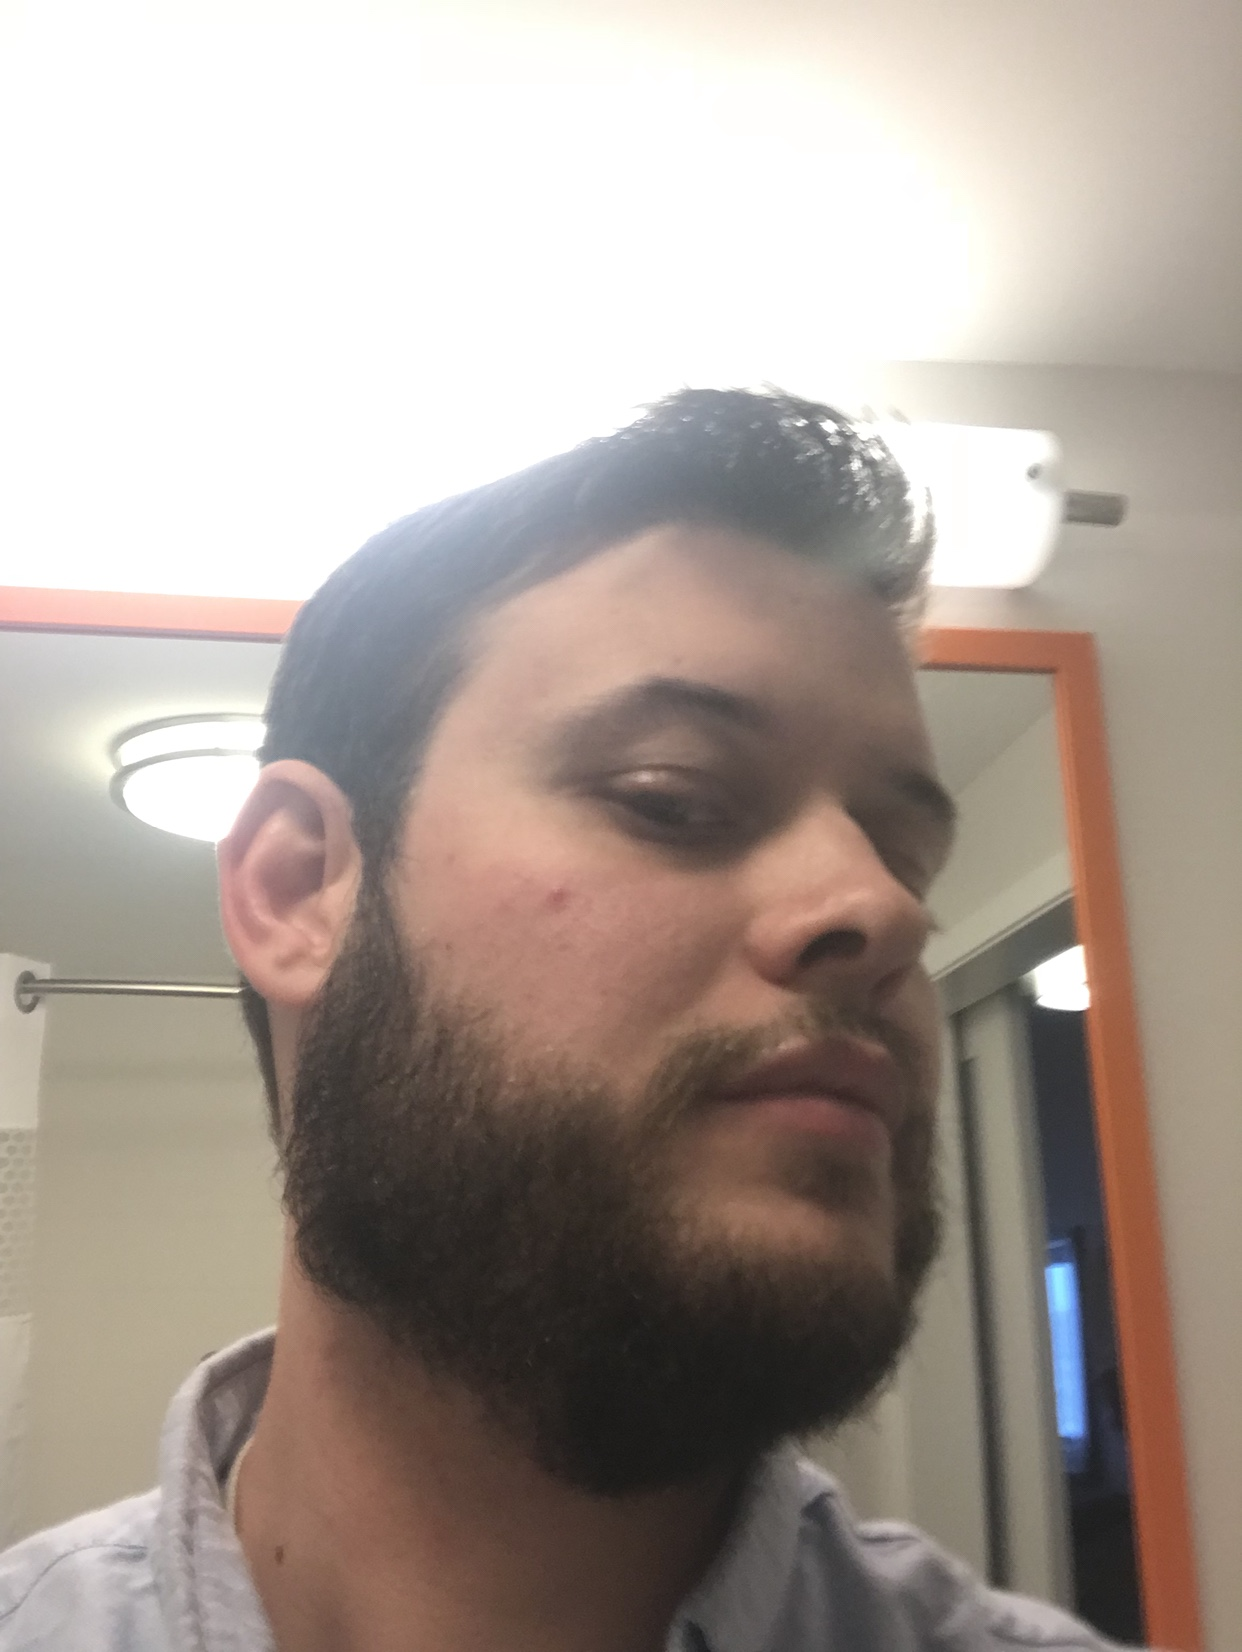 6 months worth of growth, never thought I'd really have a